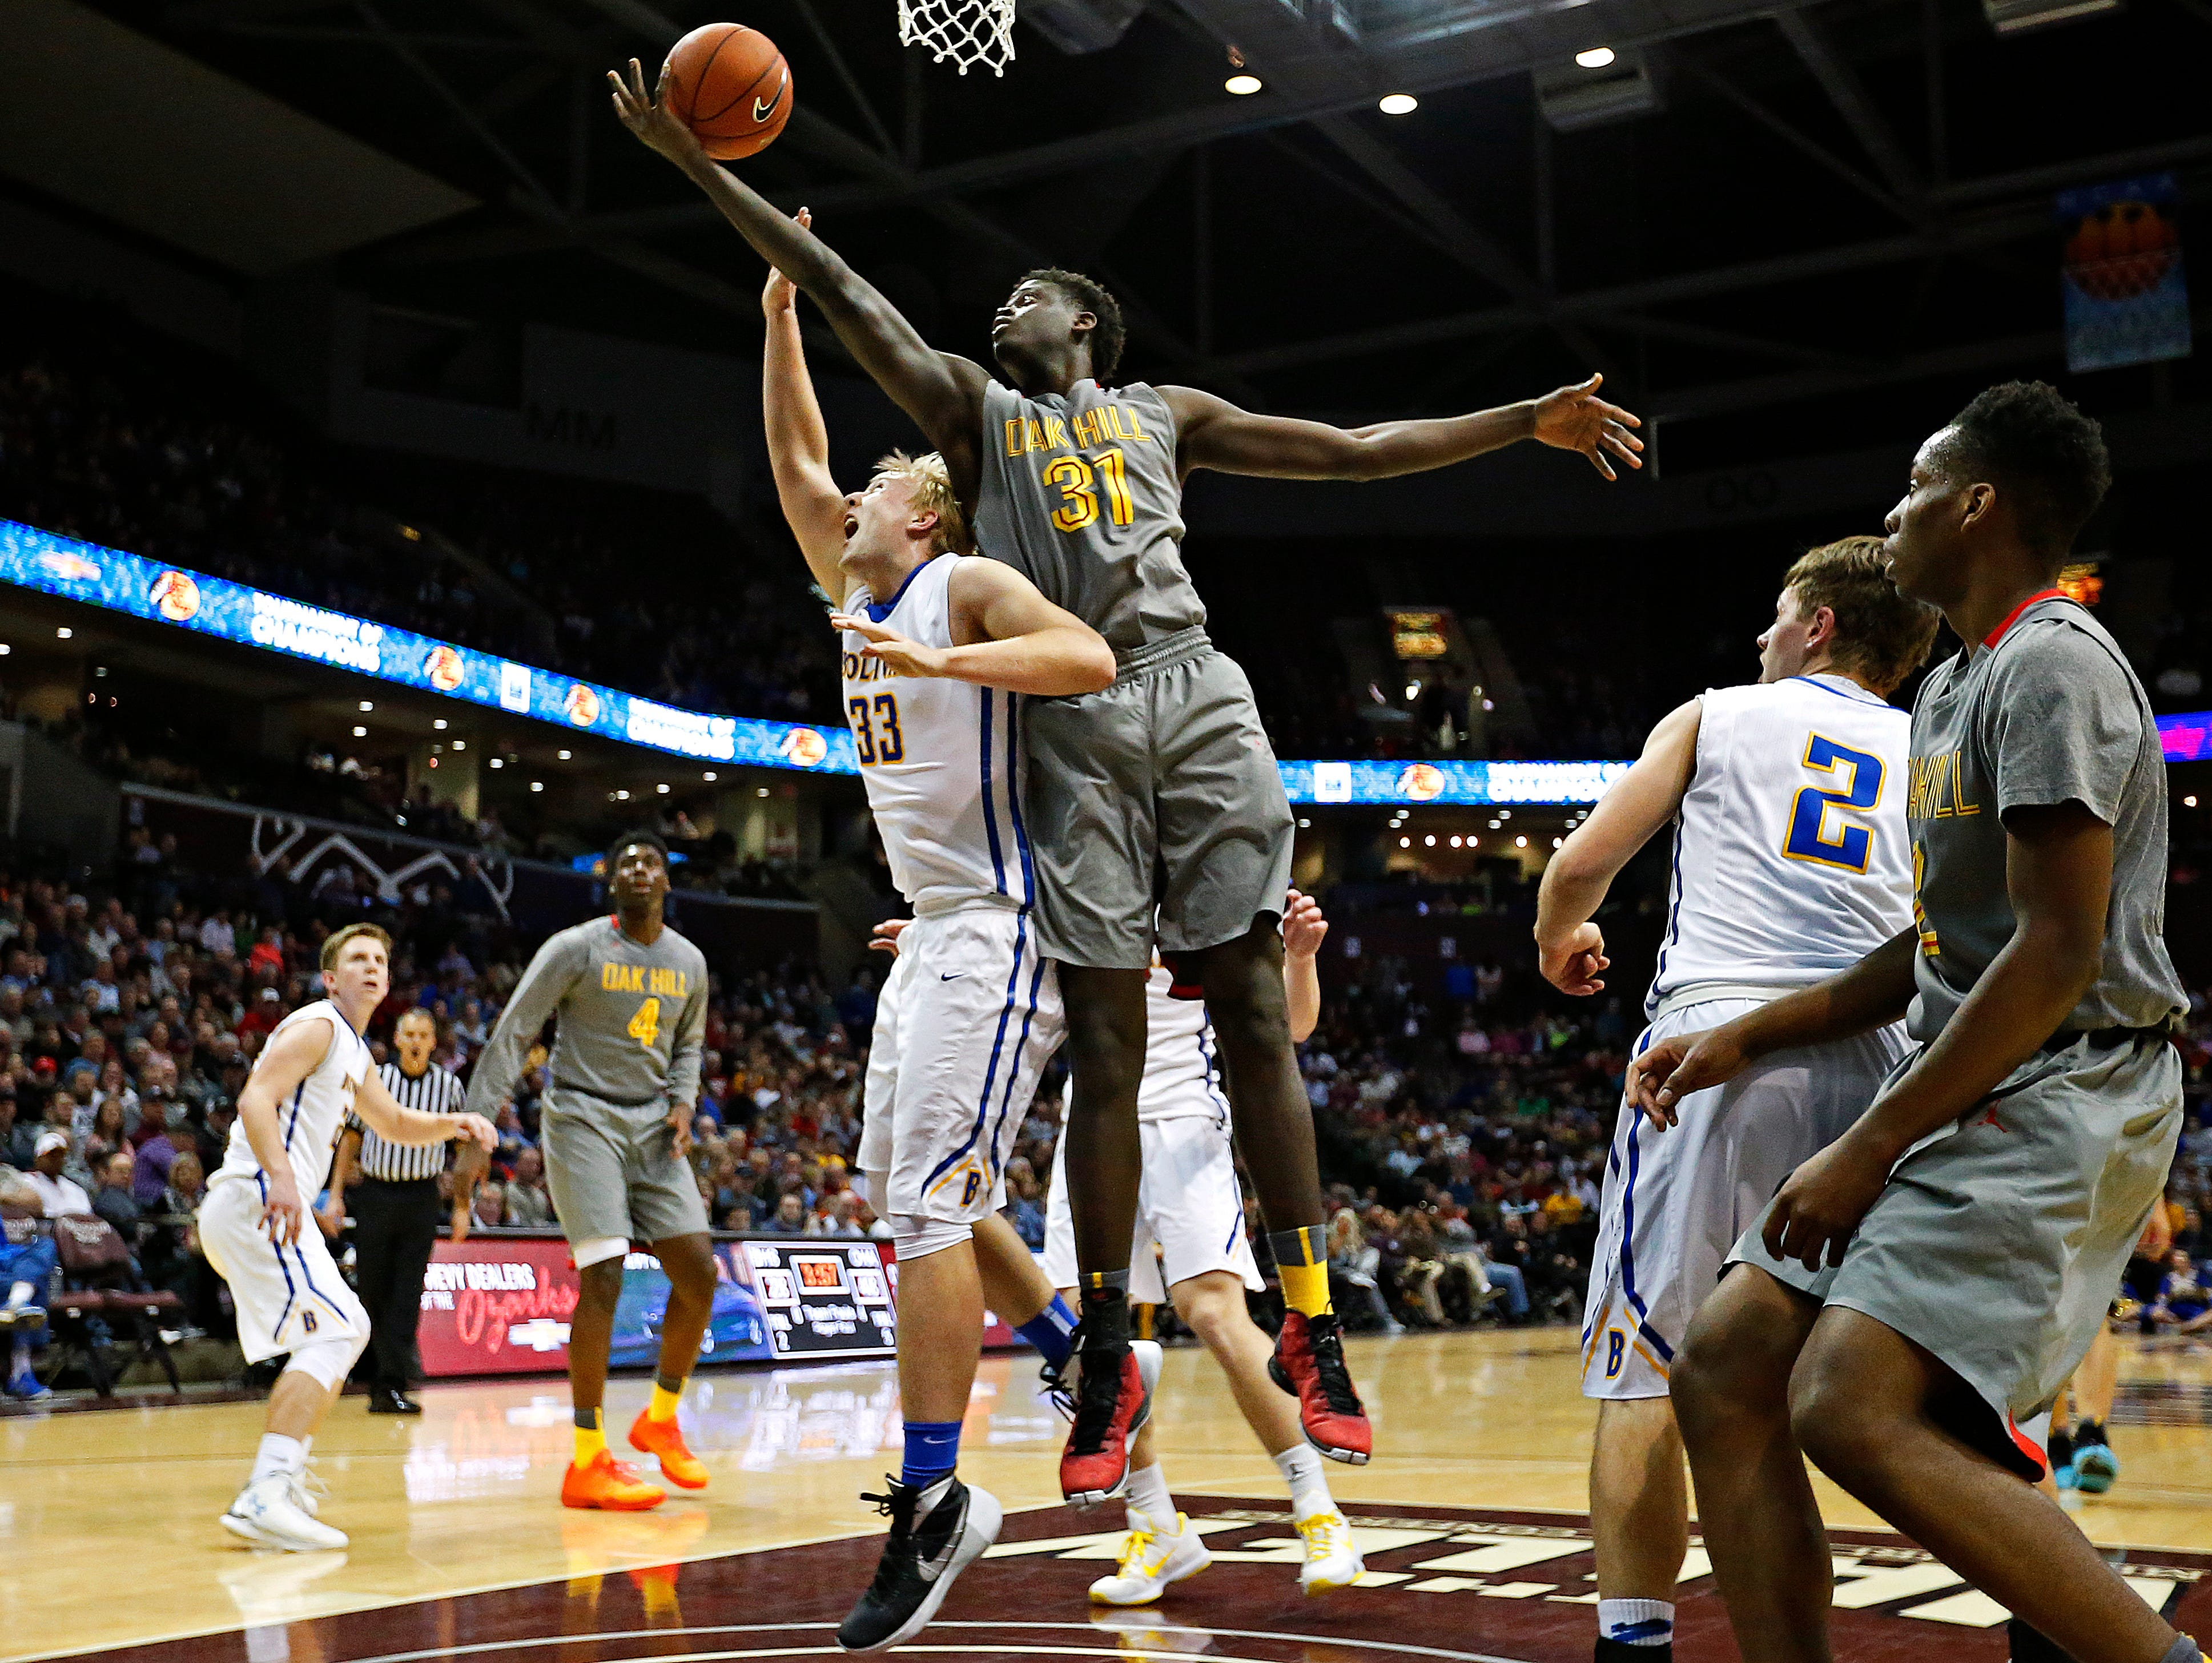 Oak Hill Academy center Khadim Sy (31) grabs a rebound over Bolivar High School forward Brandon Emmert (33) during third quarter action of the 2016 Tournament of Champions first round game between Bolivar High School (Bolivar, Mo.) and Oak Hill Academy (Mouth of Wilson, Va.) at JQH Arena in Springfield, Mo. on Jan. 14, 2015. The Oak Hill Warriors won the game 73-38.